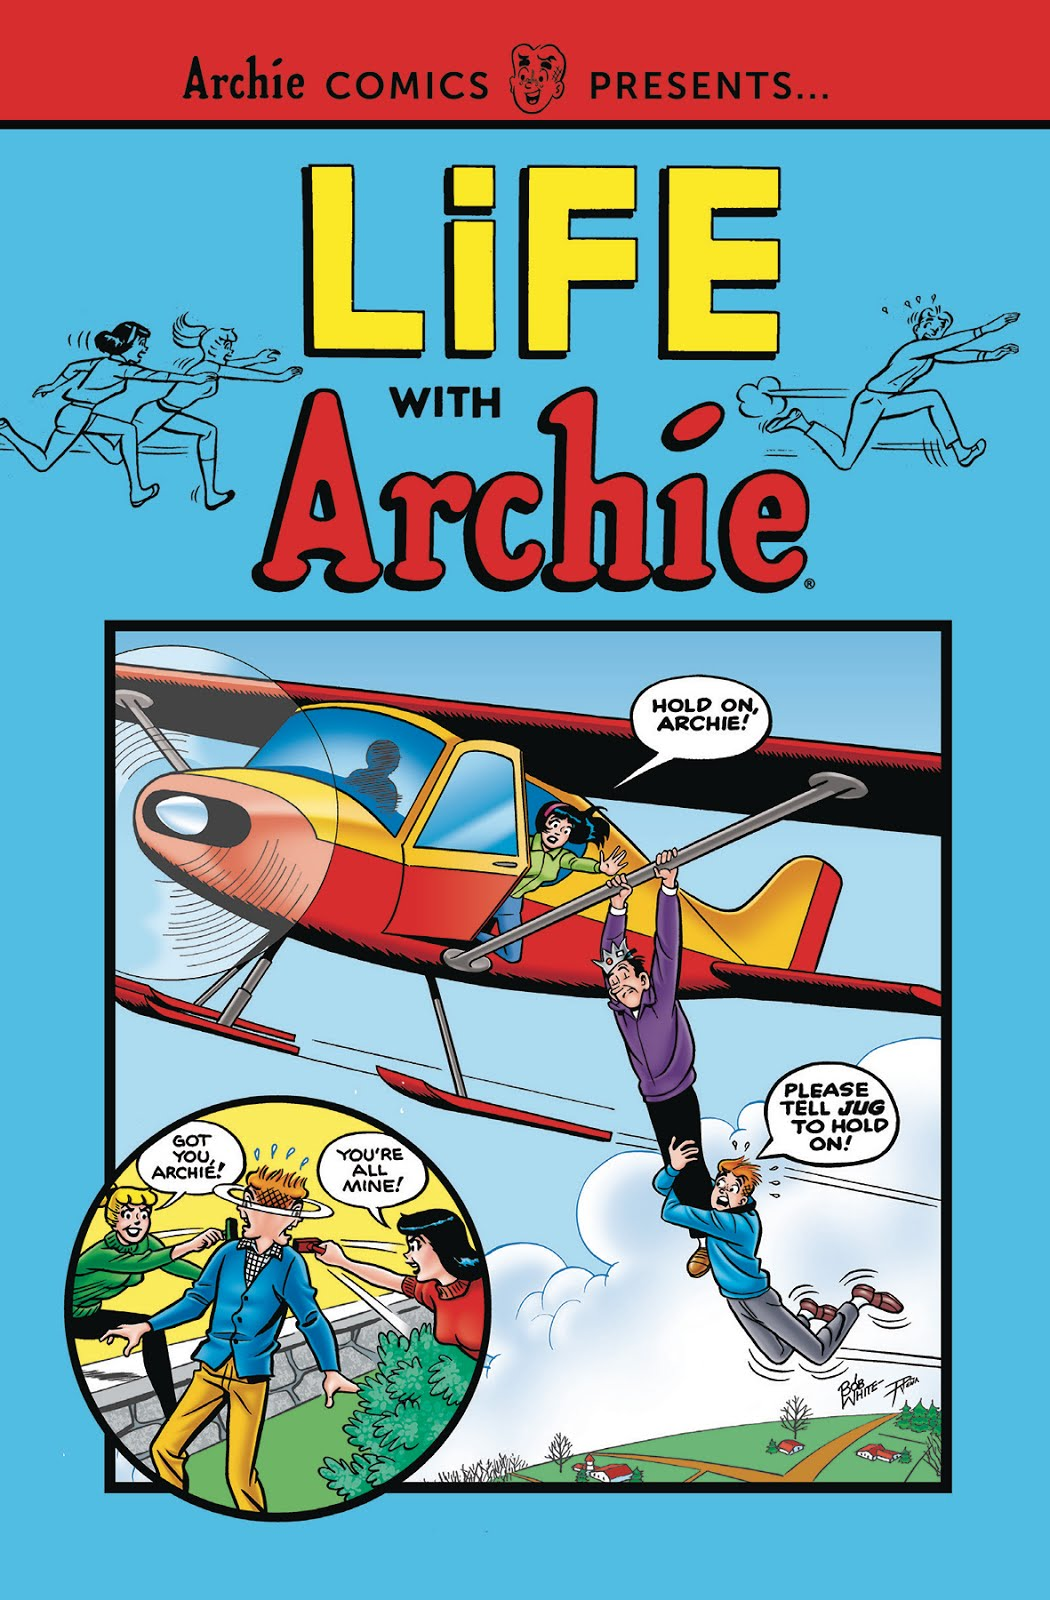 LIFE With ARCHIE!